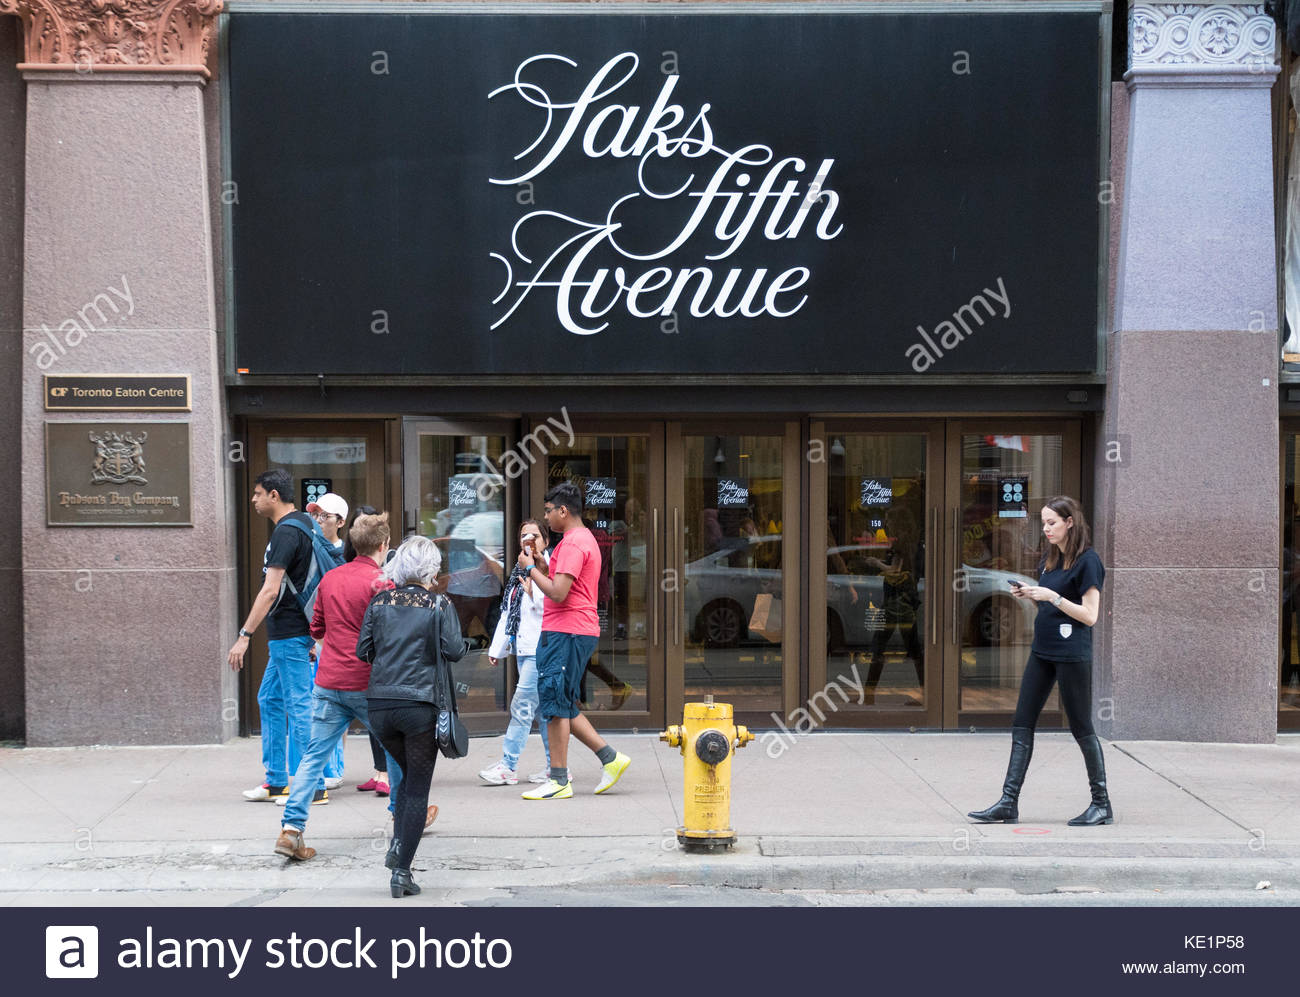 Fifth avenue clothing store